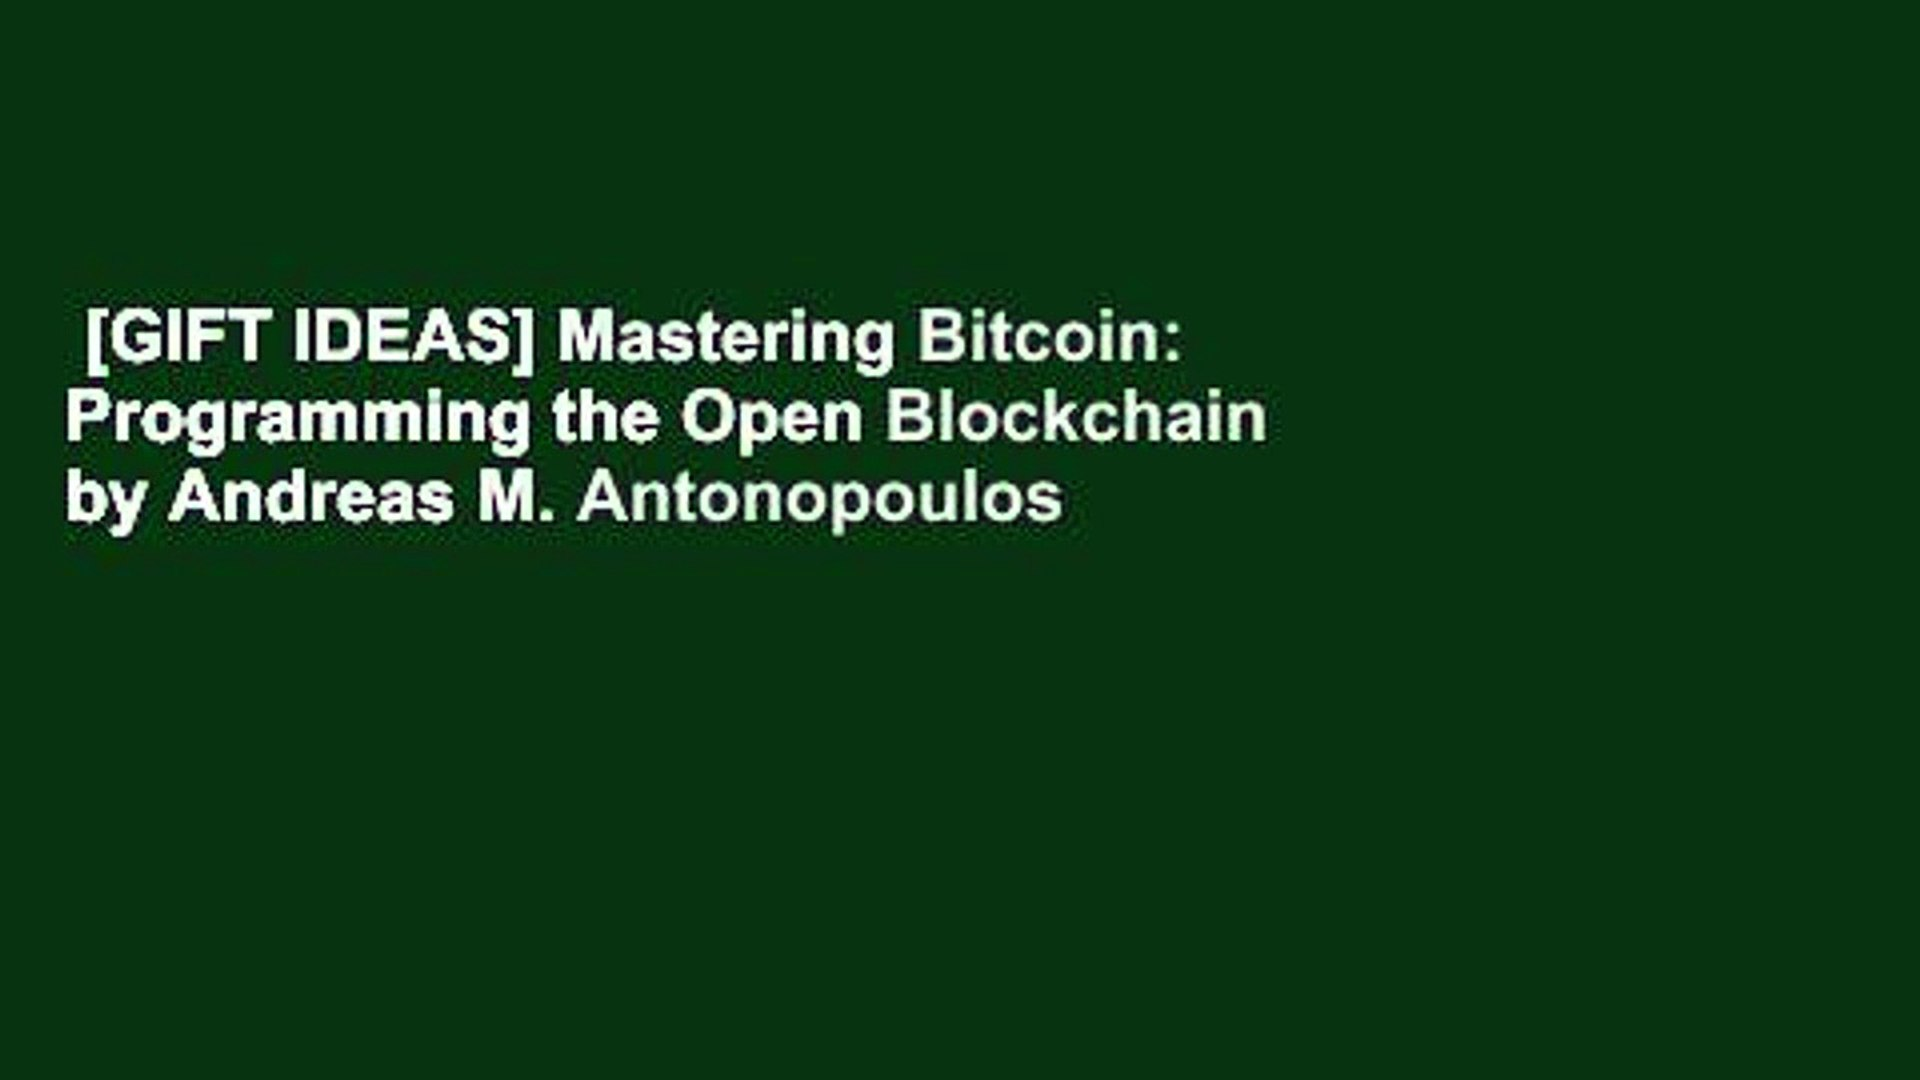 [GIFT IDEAS] Mastering Bitcoin: Programming the Open Blockchain by Andreas M. Antonopoulos